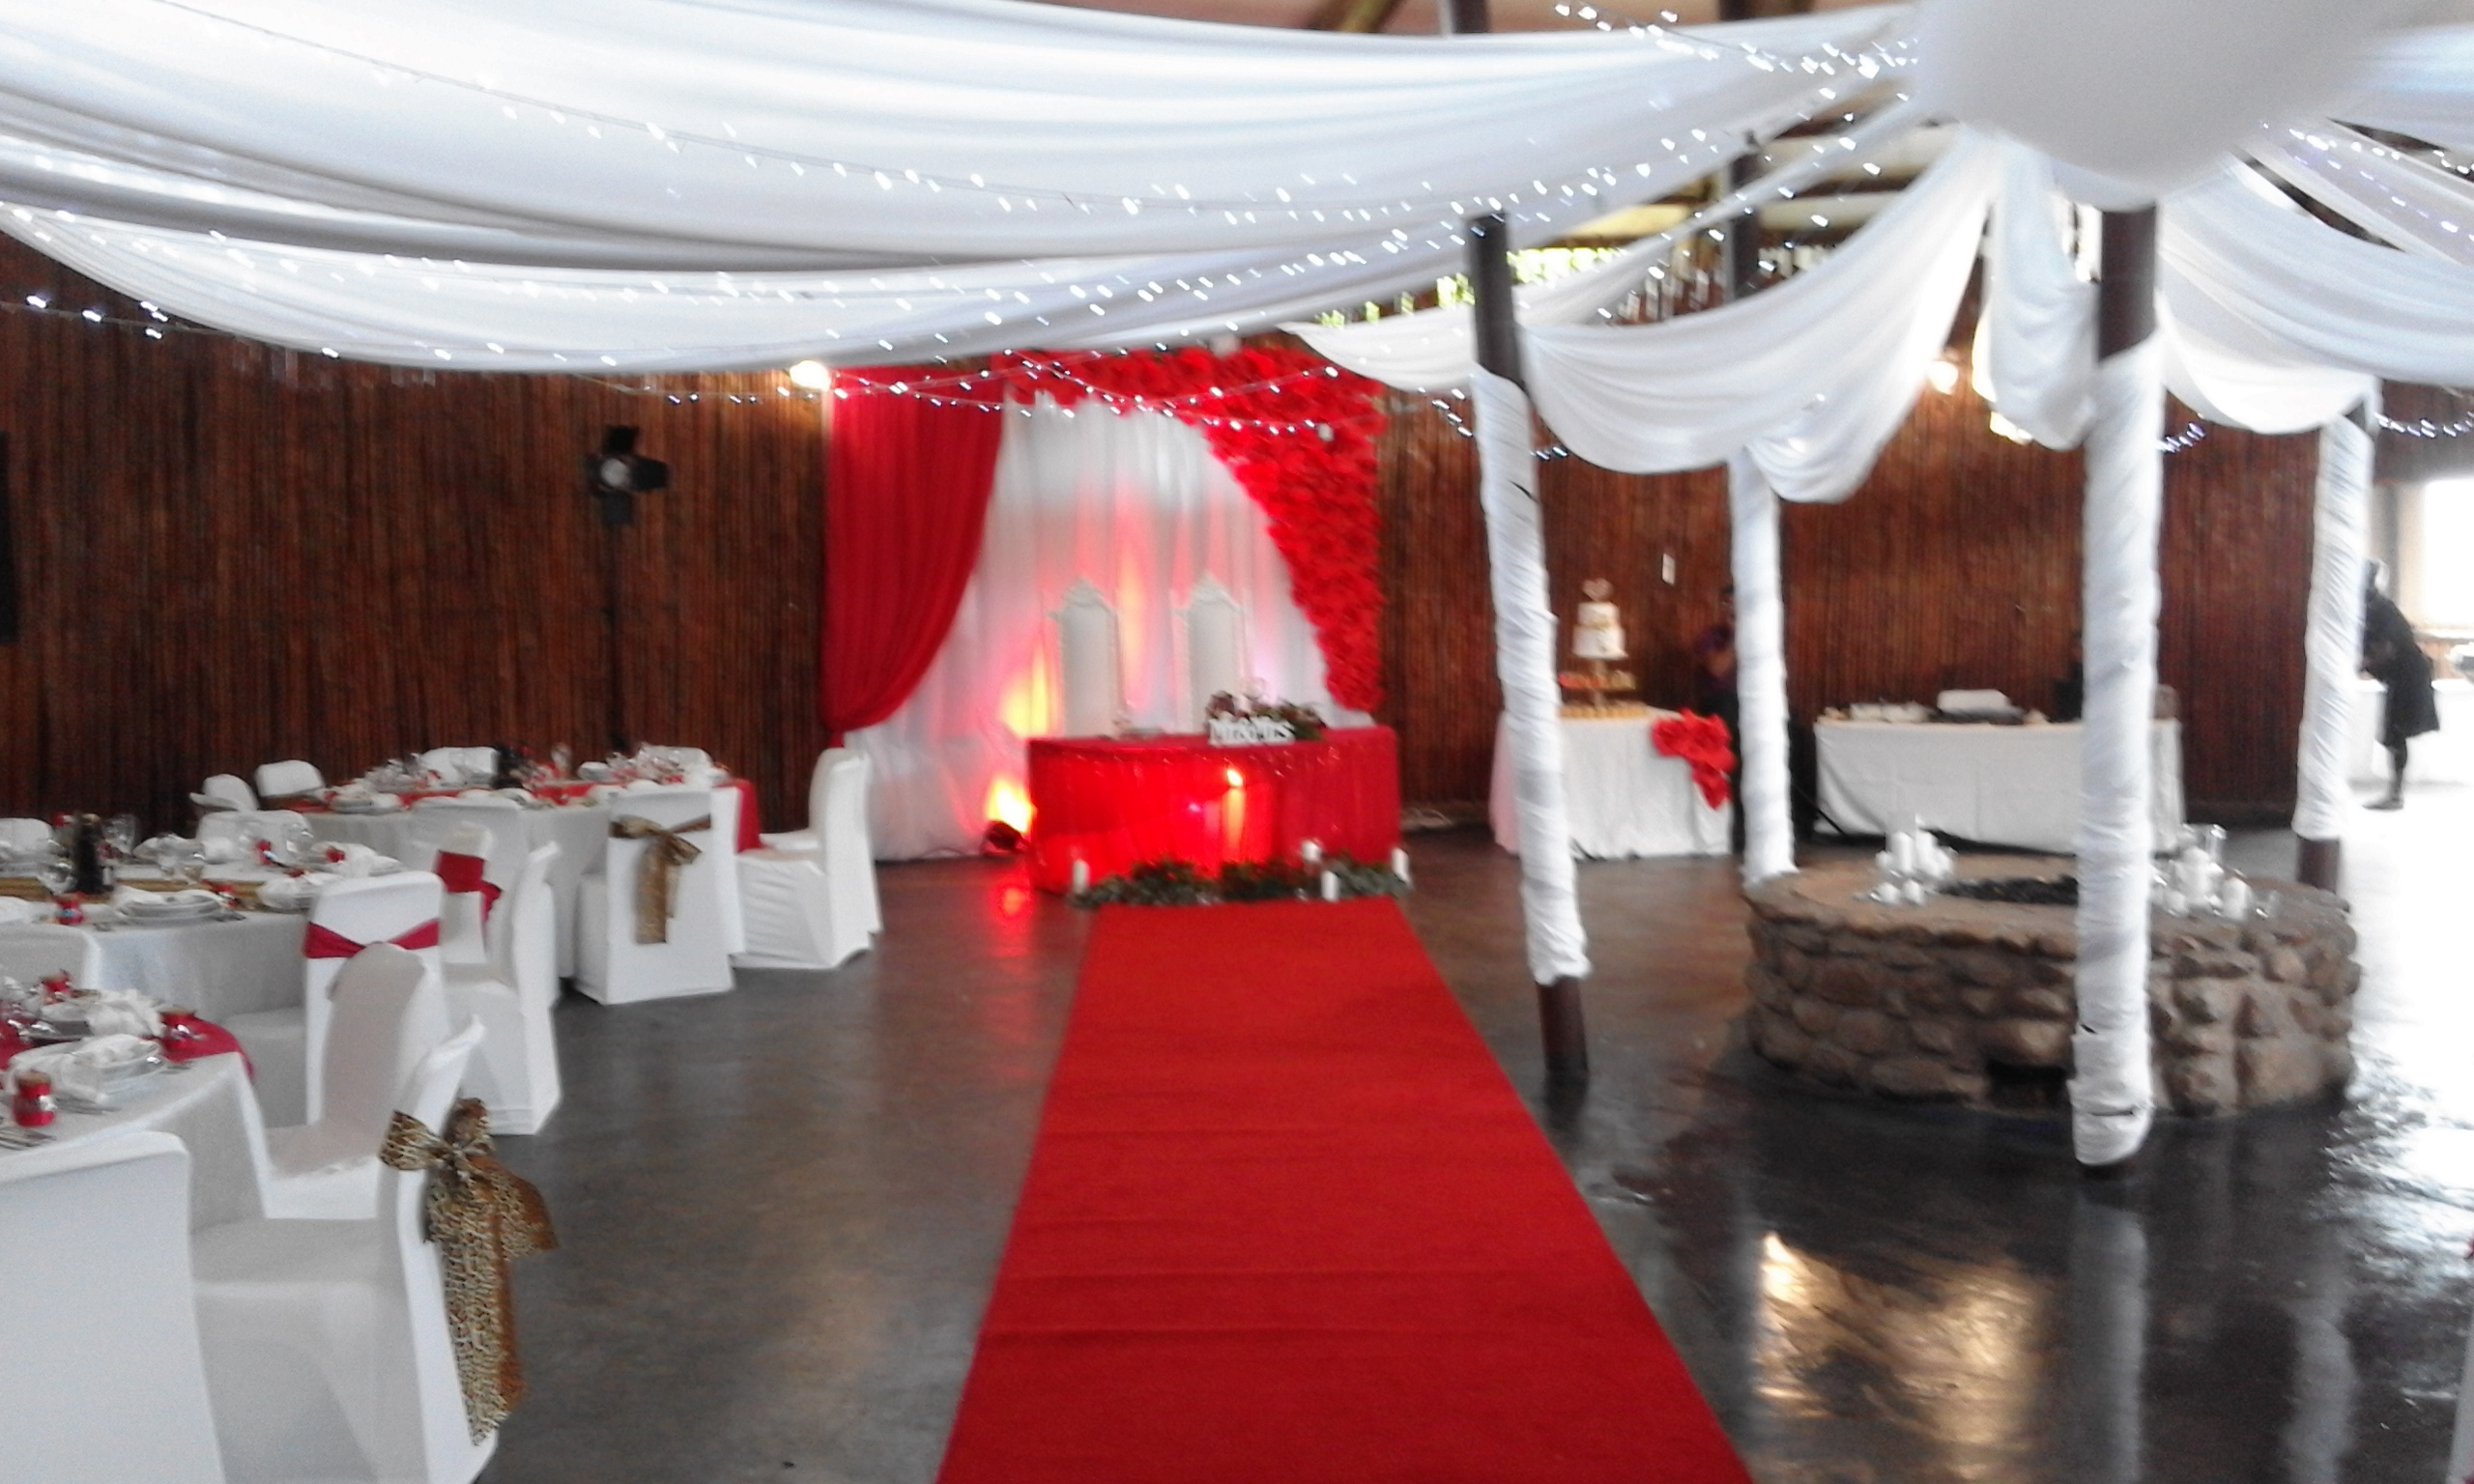 Perana Set Design offers event decor and complete set-up